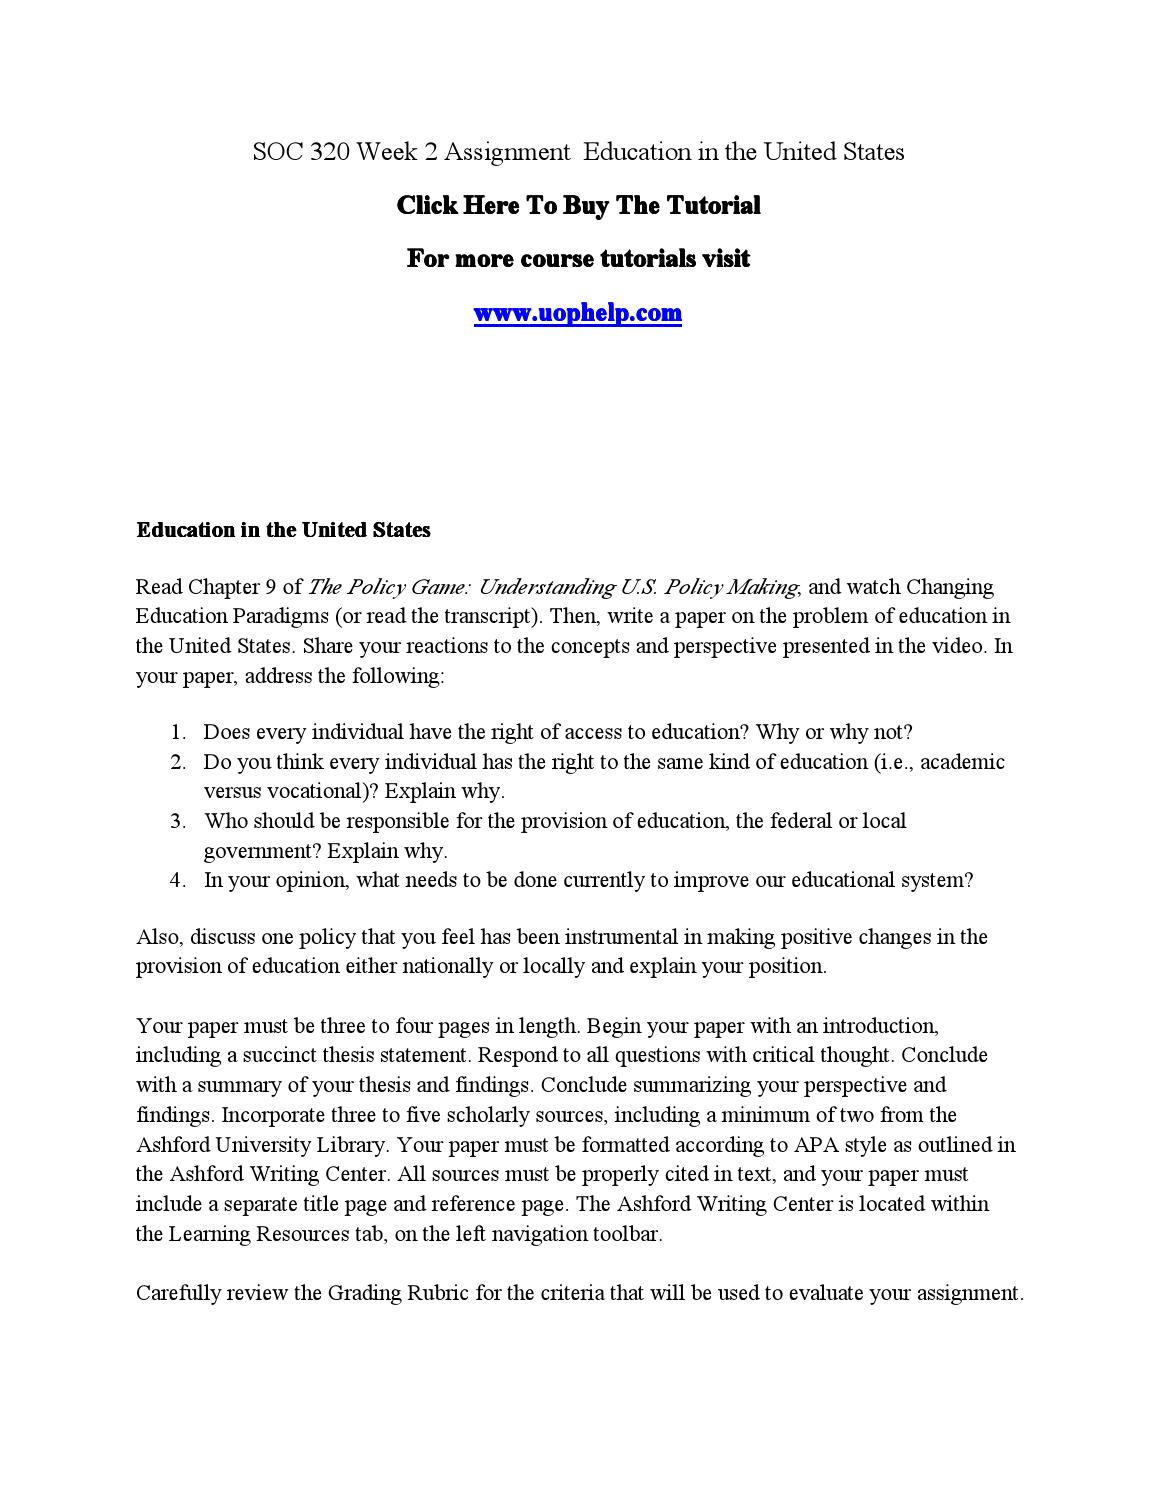 journal article review assignment how to write a reflection paper steps pictures slideshare